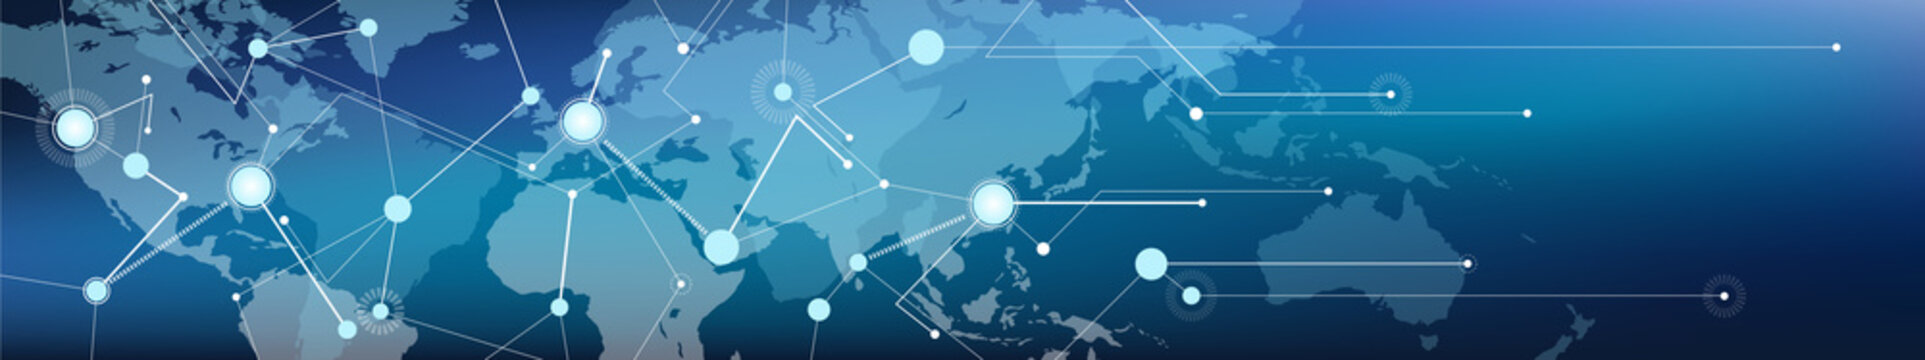 connected world map banner – communication / logistics and transportation / commerce, digitalization and connectivity, vector illustration